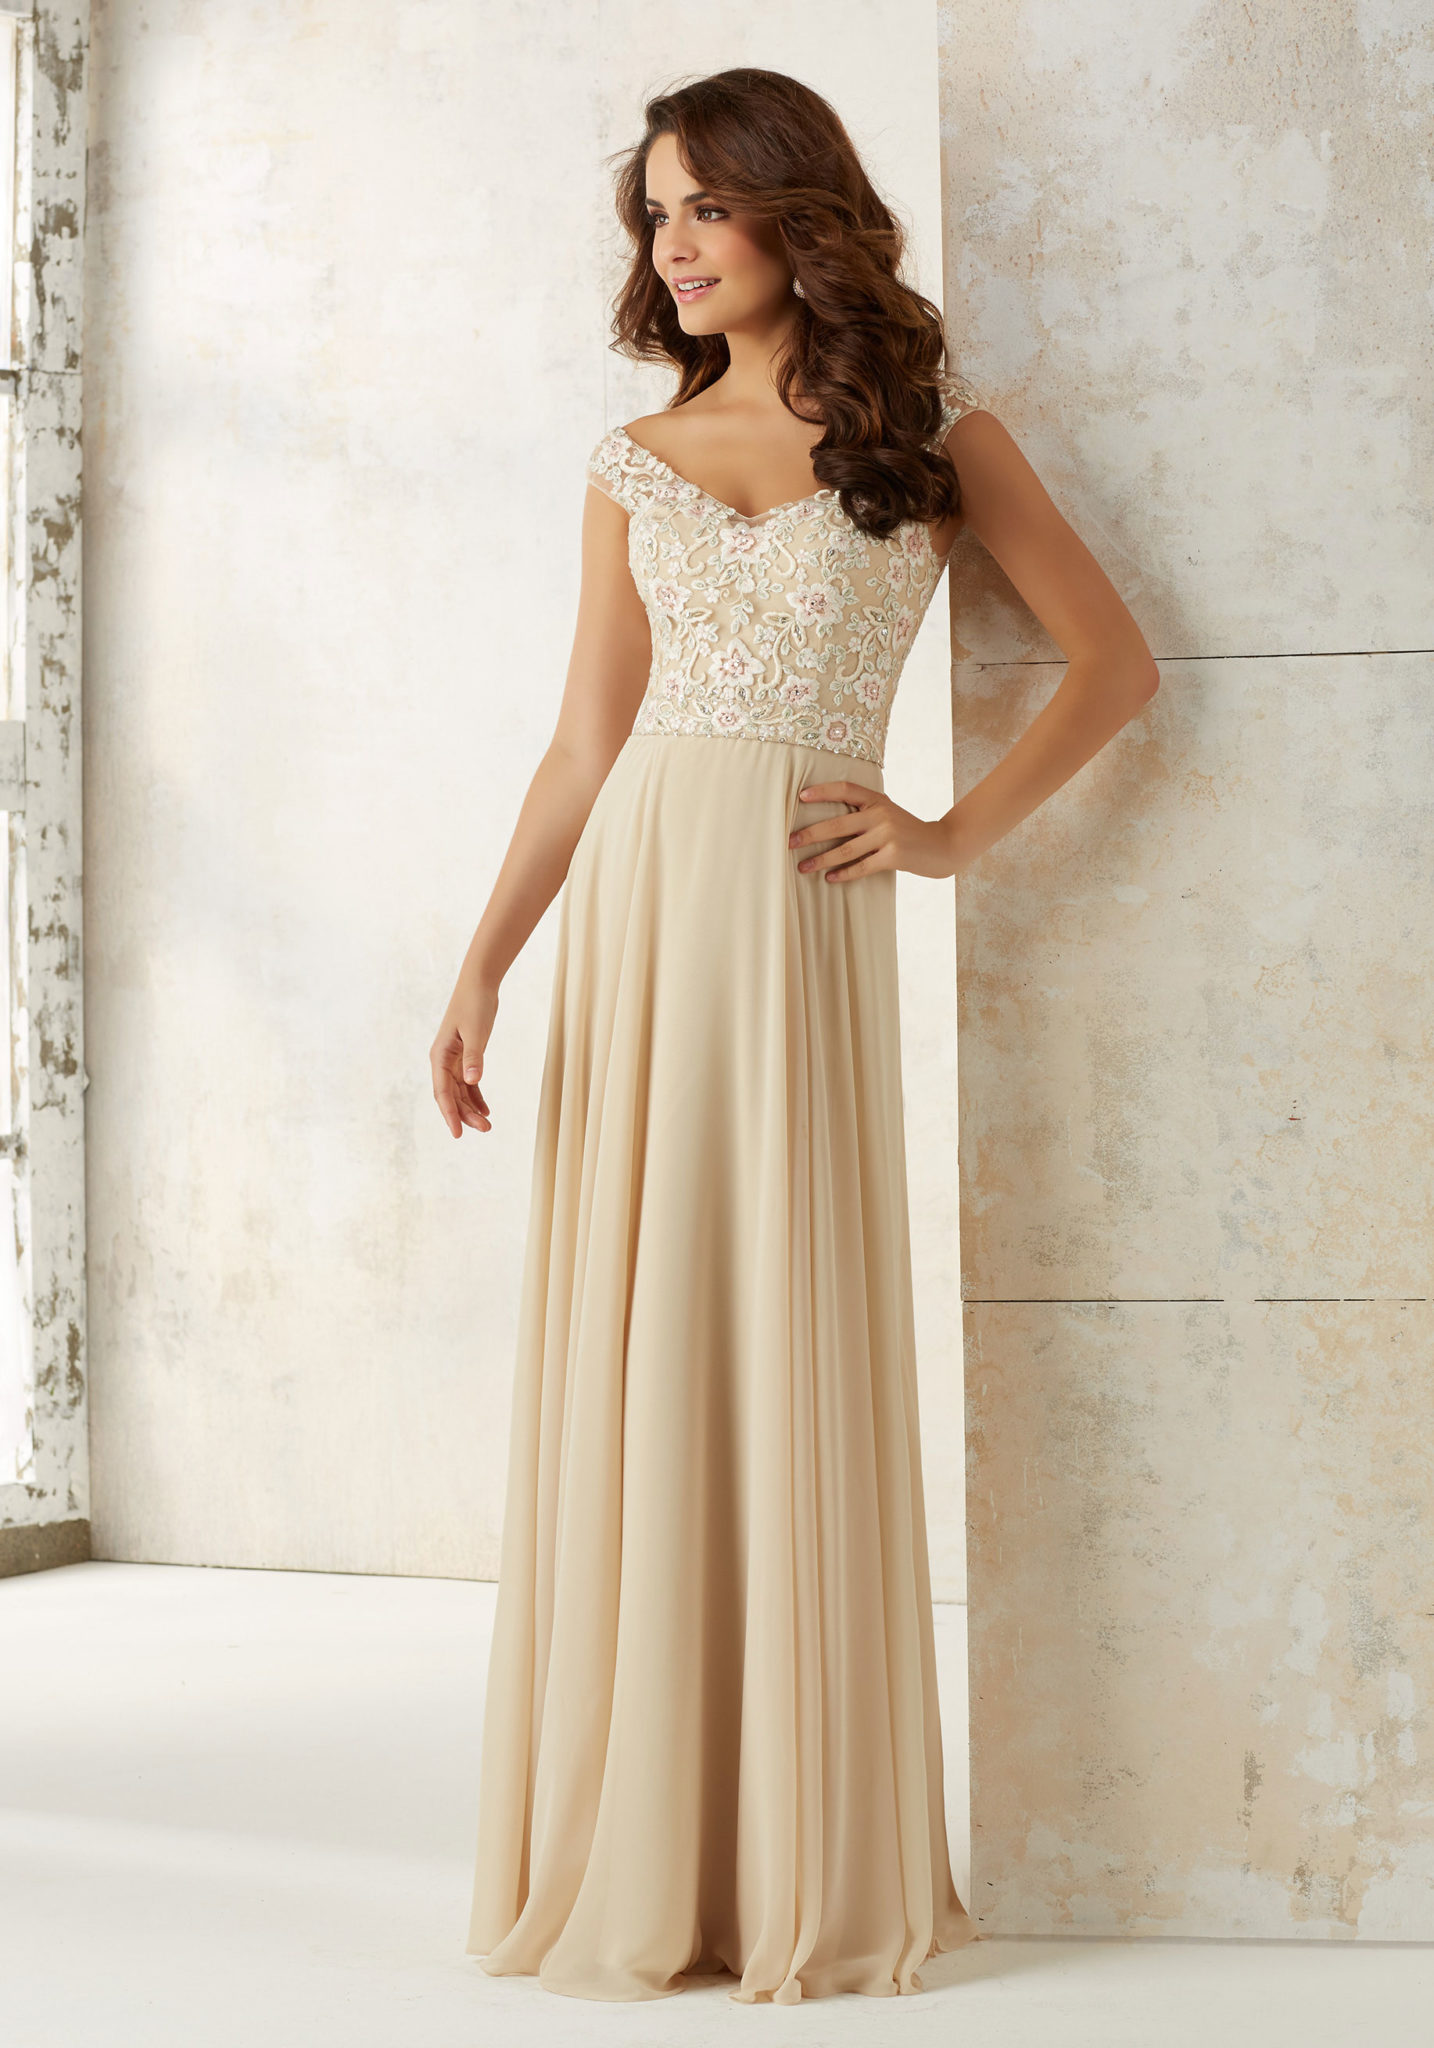 Bridesmaids lauries bridal scottsdale arizona wedding dress lauries offers bridesmaids samples in all different sizes colors and fabrics our bridesmaids average in price between 150 180 ombrellifo Gallery